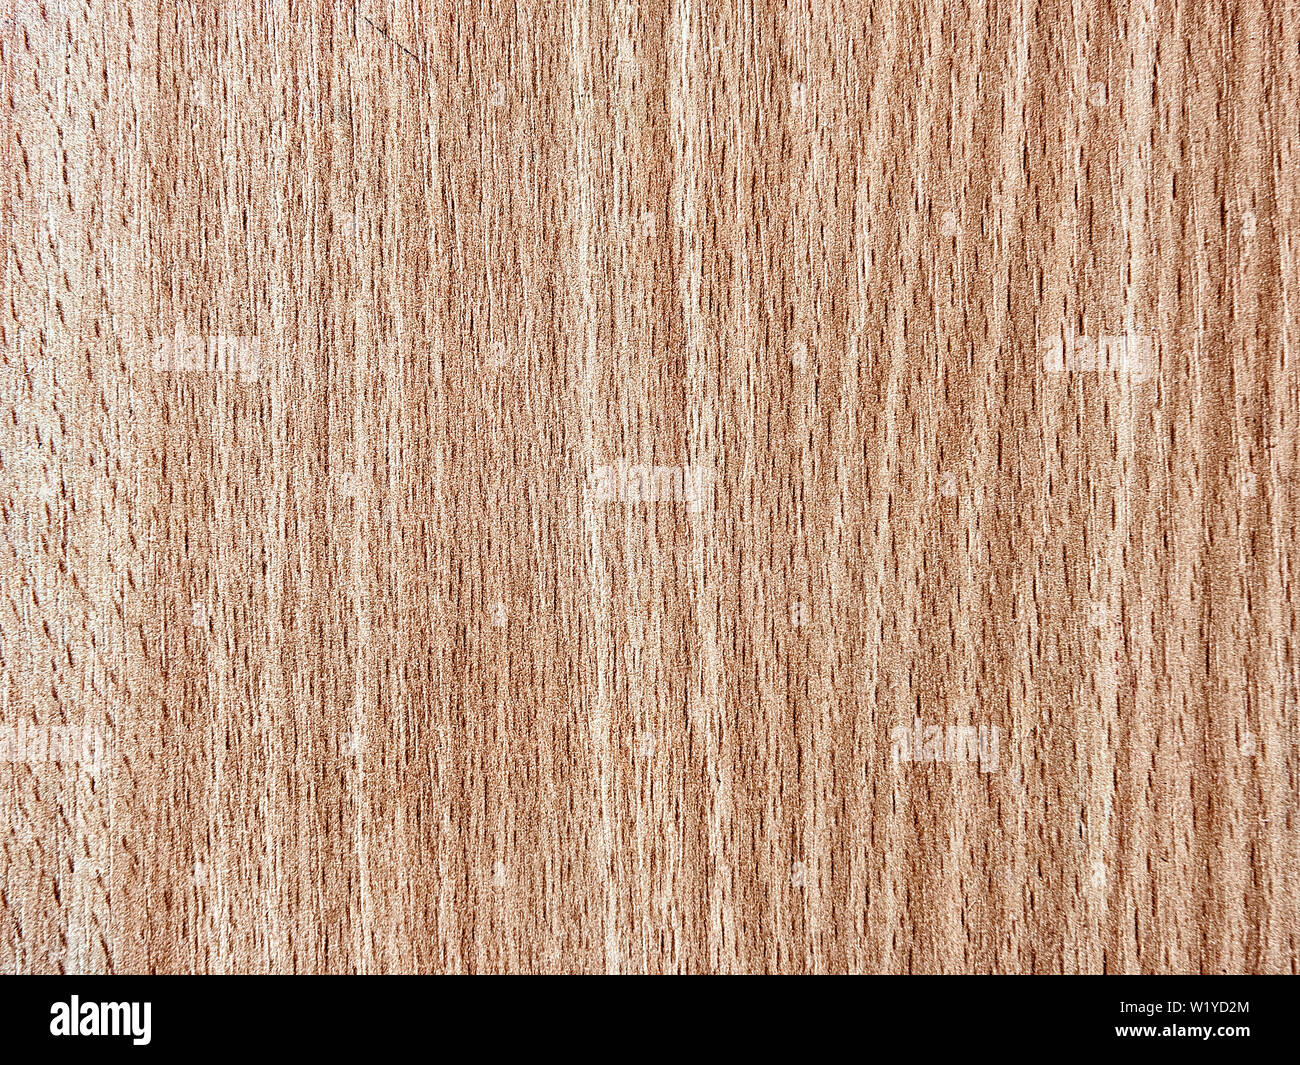 Background of wood chipboard painted a wood texture - Stock Image